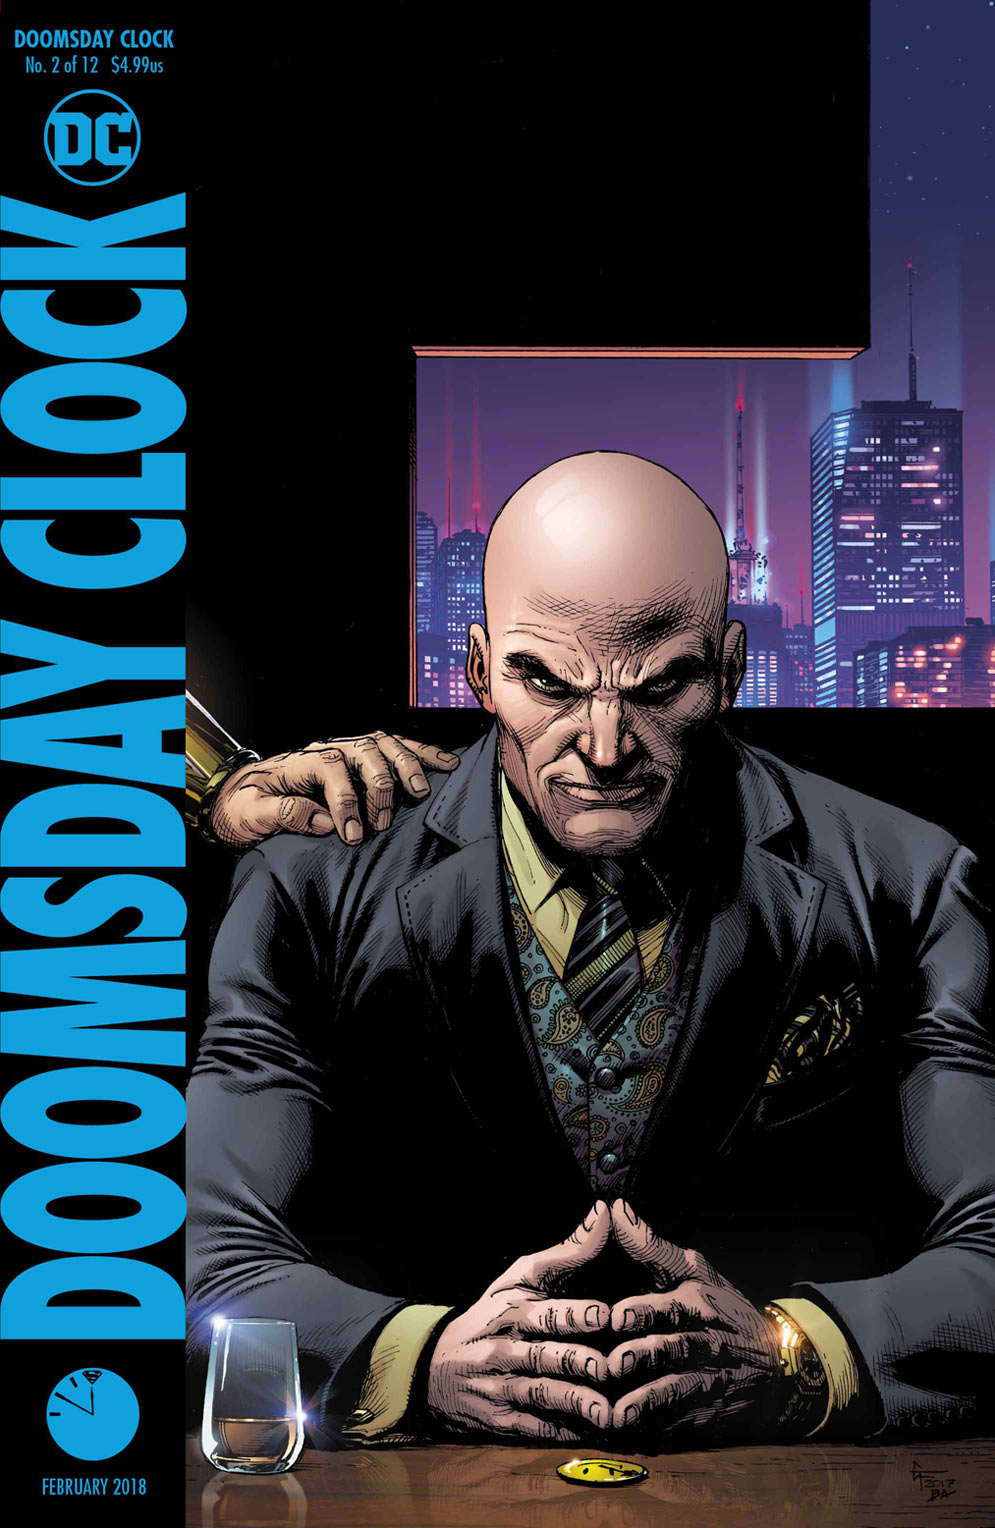 Doomsday Clock #2 - DC Comics News